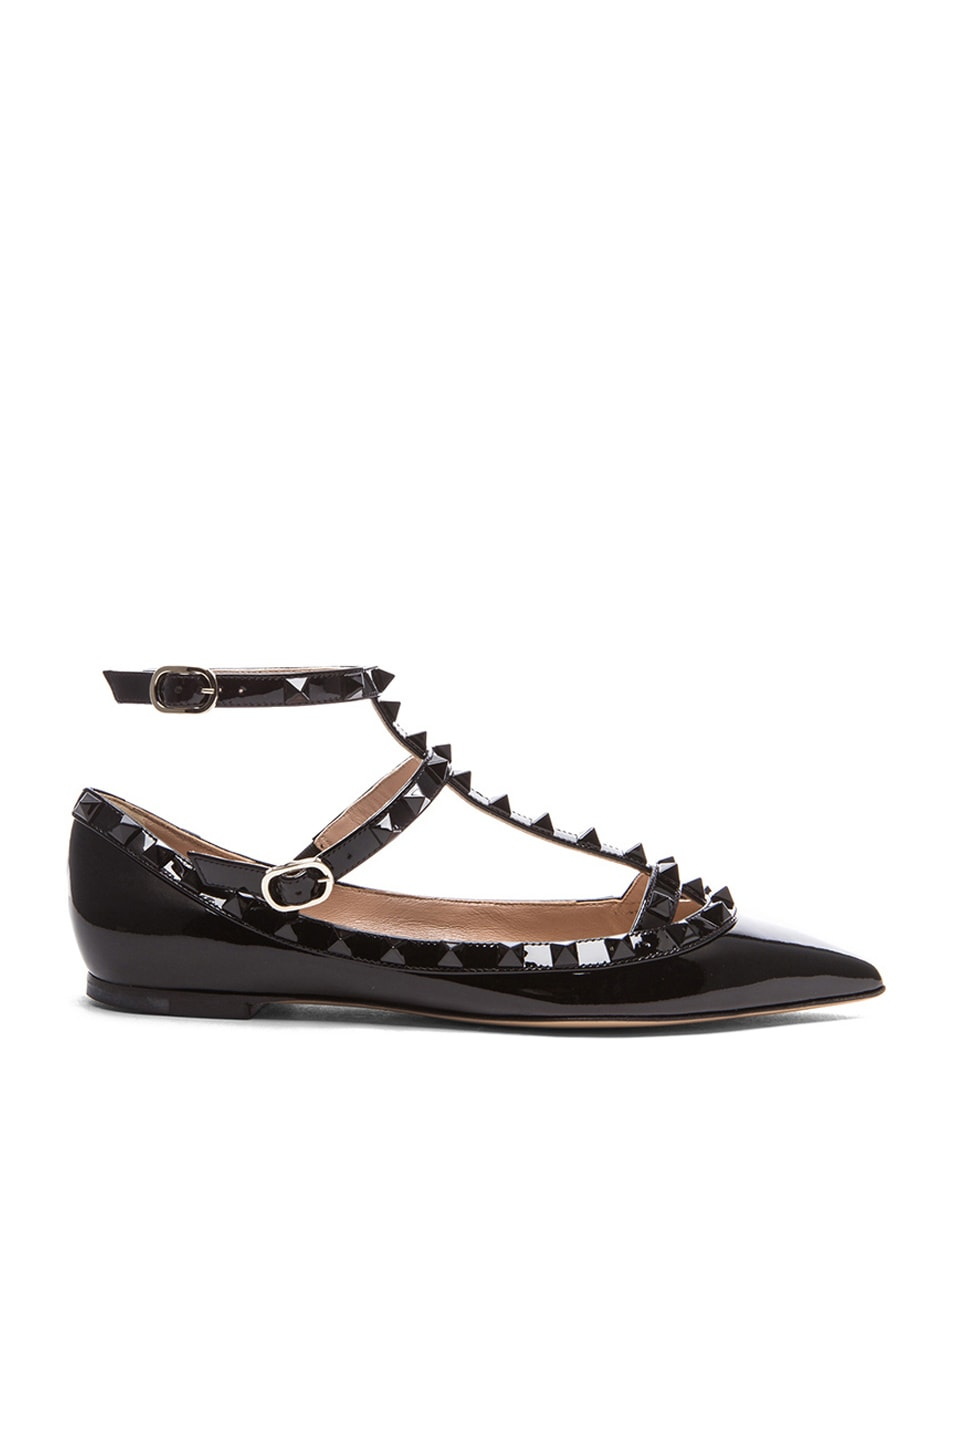 Image 1 of Valentino Rockstud Punkouture Patent Ballerina Flats in Black